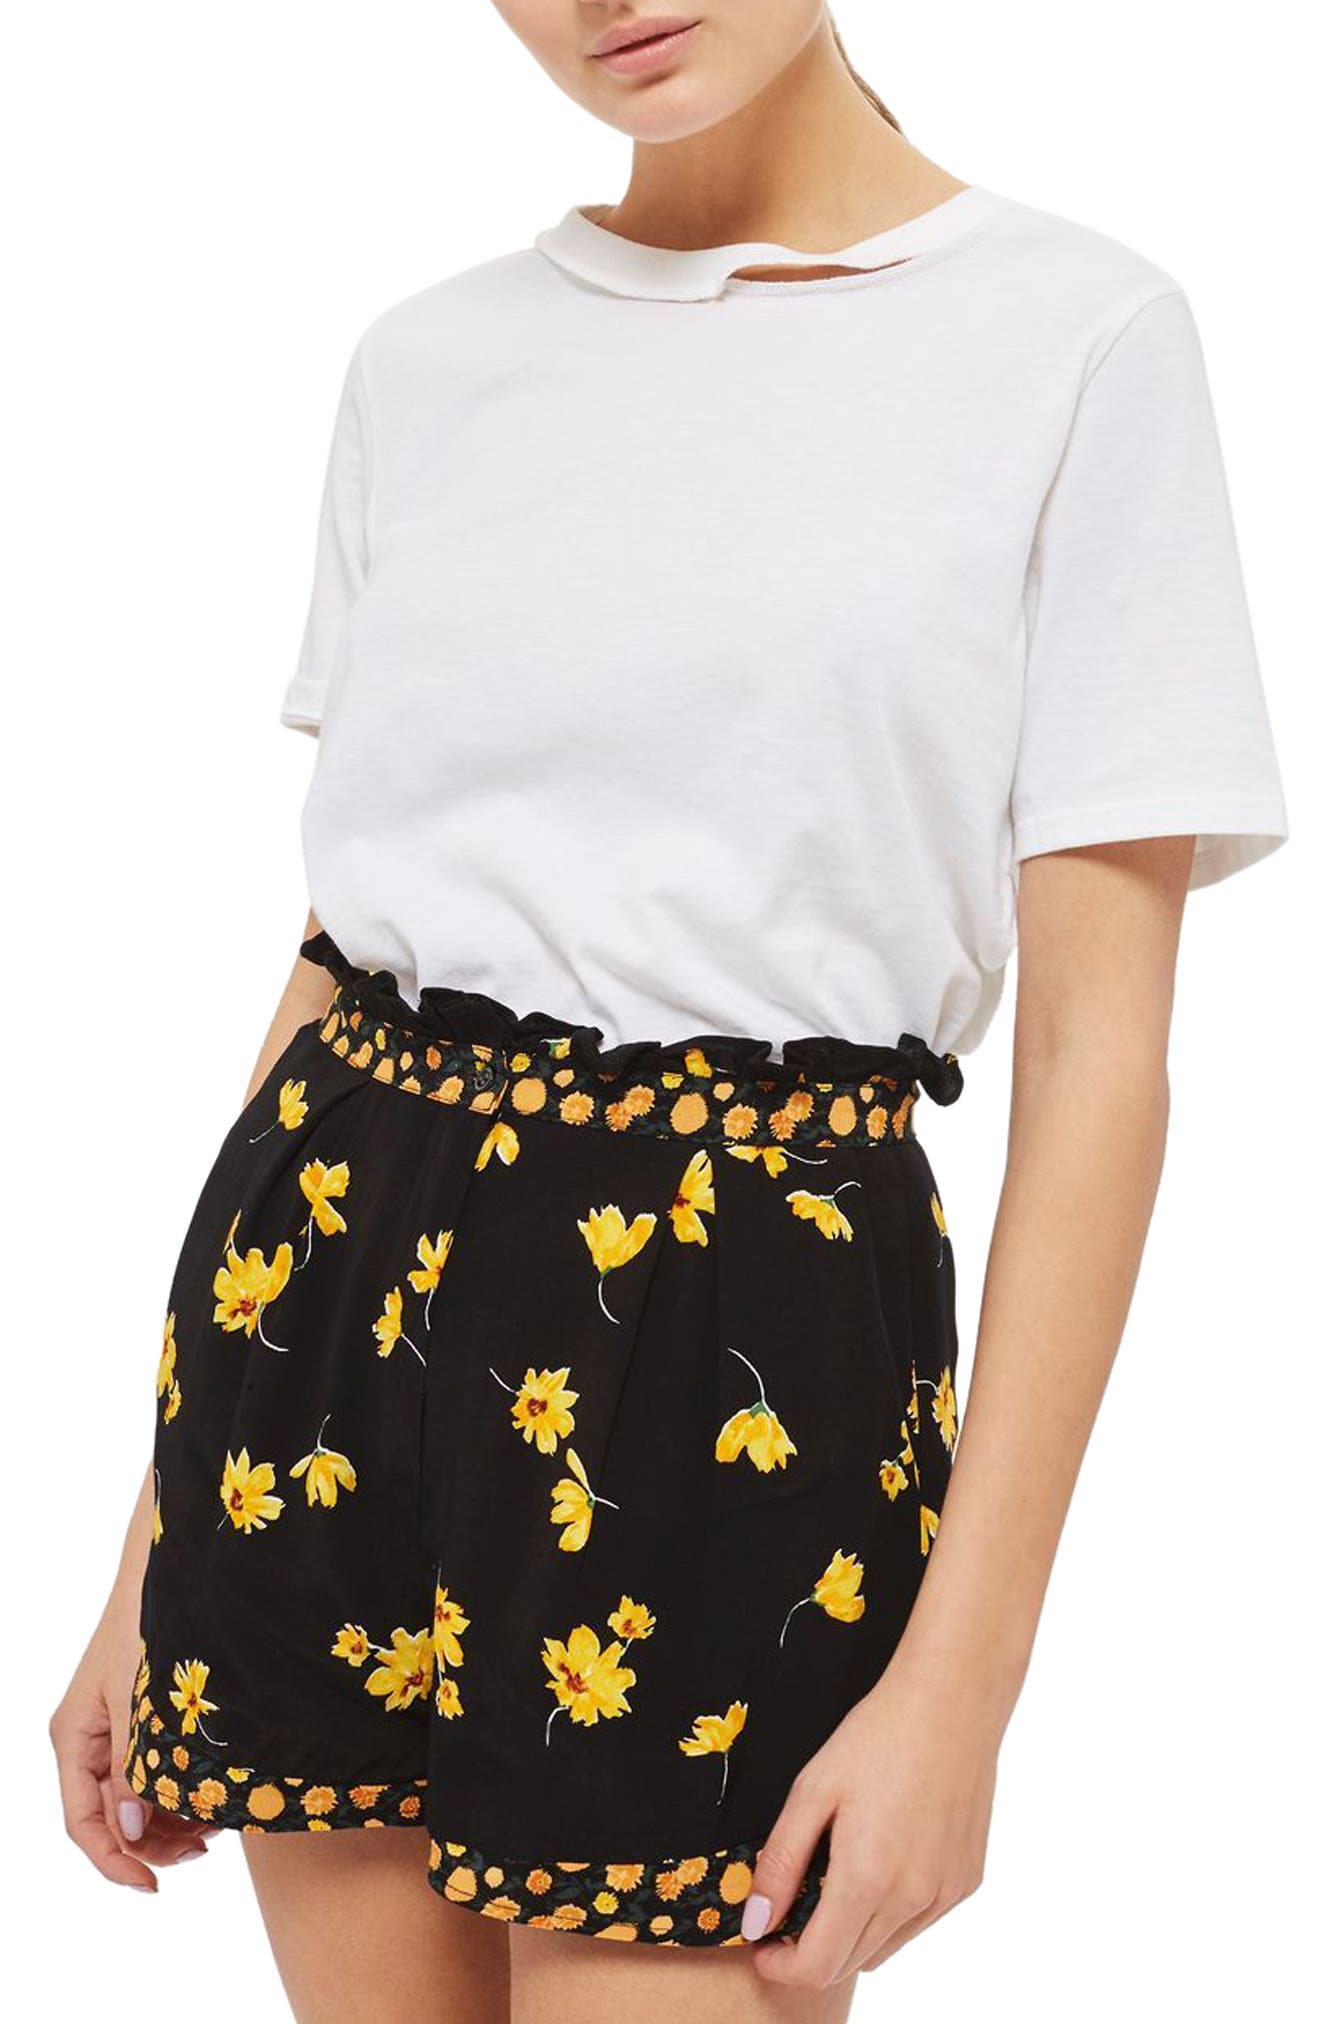 Topshop Floral Shorts (Regular & Petite)